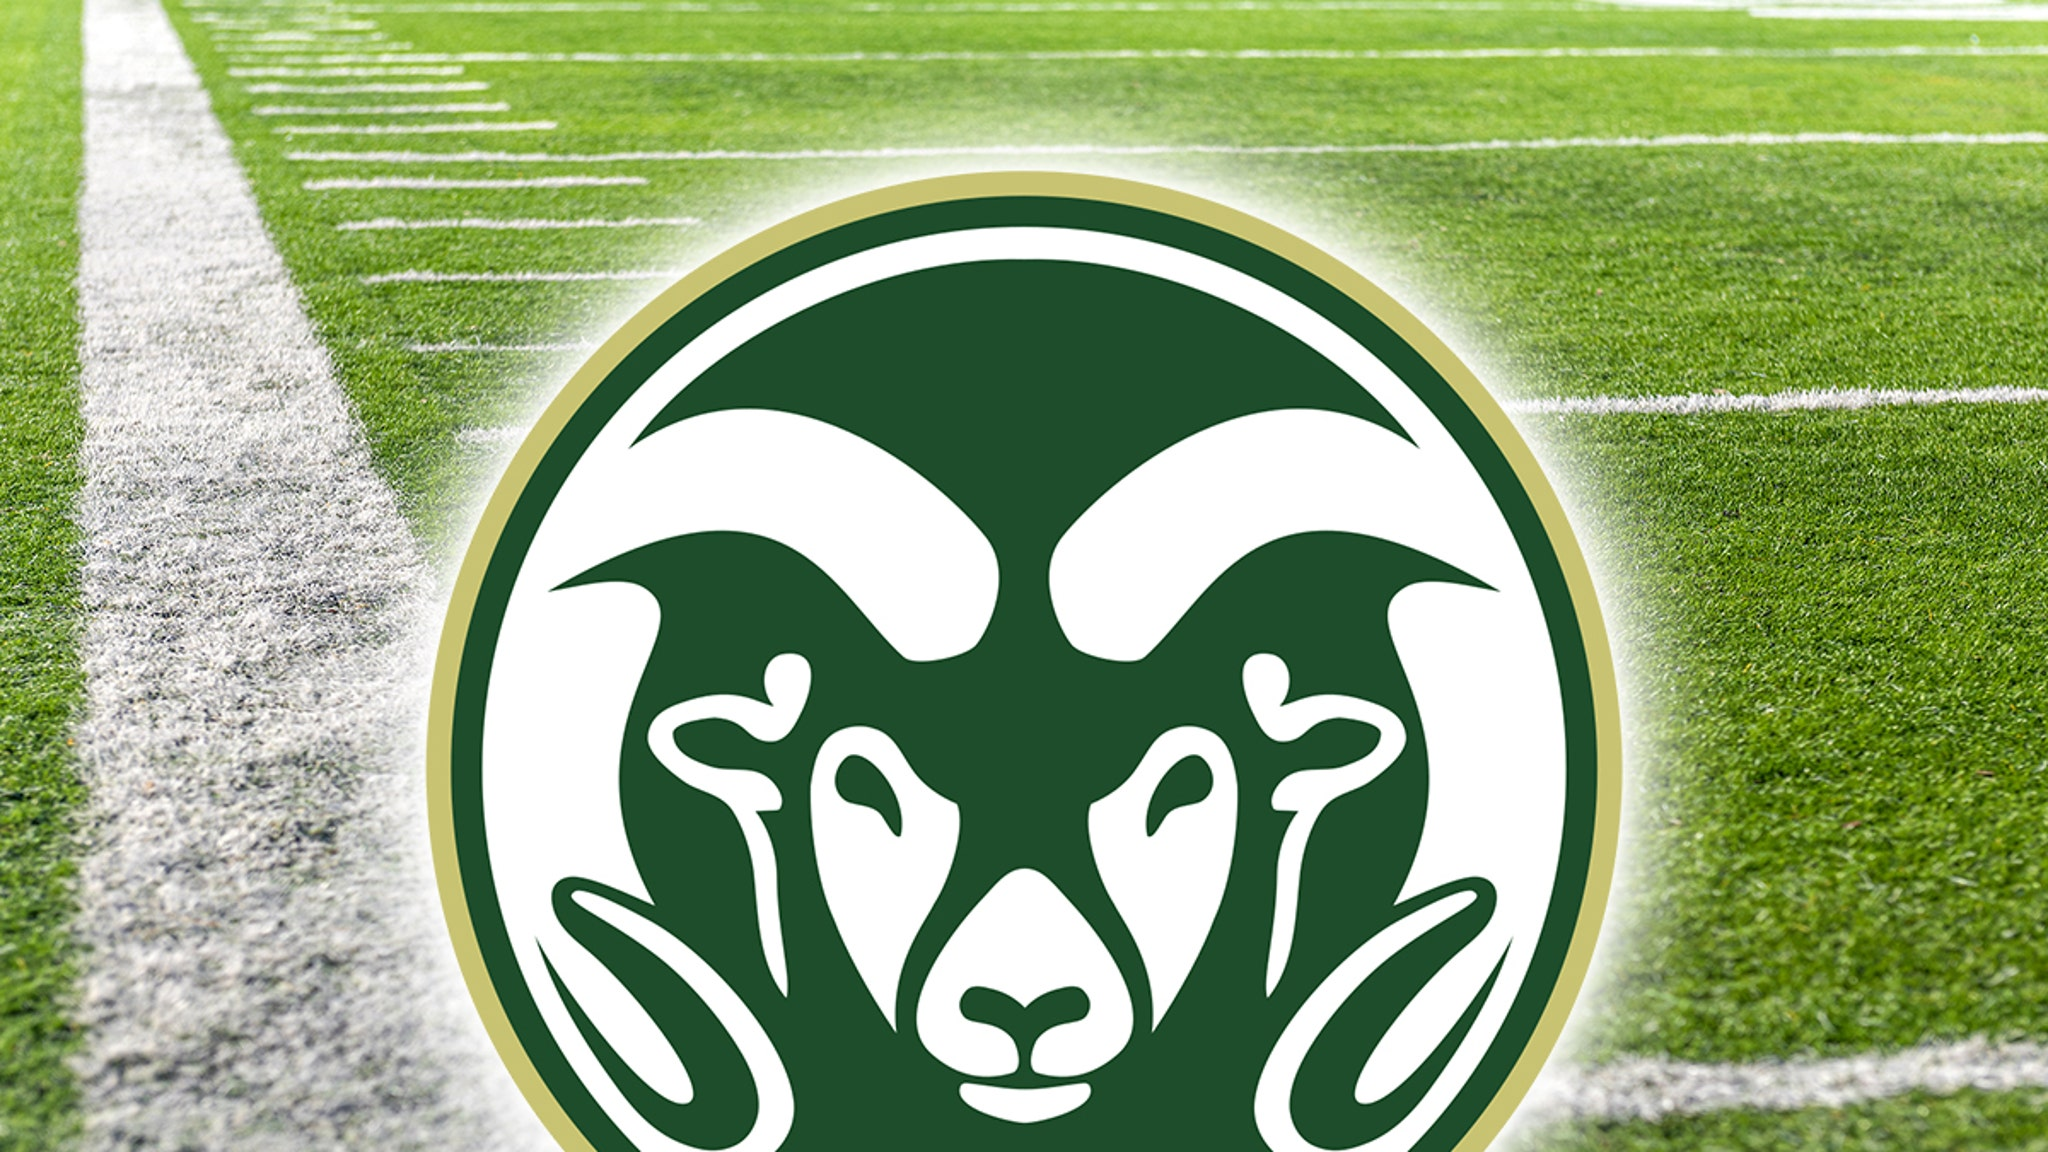 Colorado State University Athletes Claim COVID-19 Cover-Up In Bombshell Report